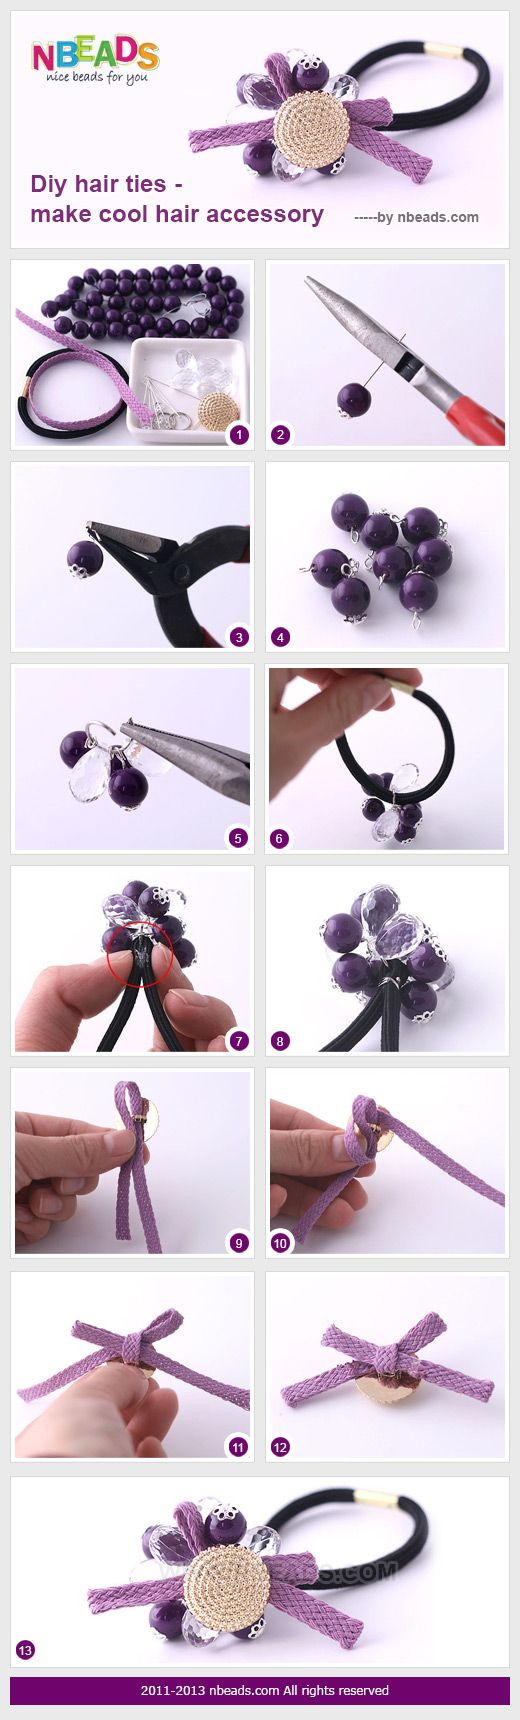 diy hair ties - make cool hair accessory